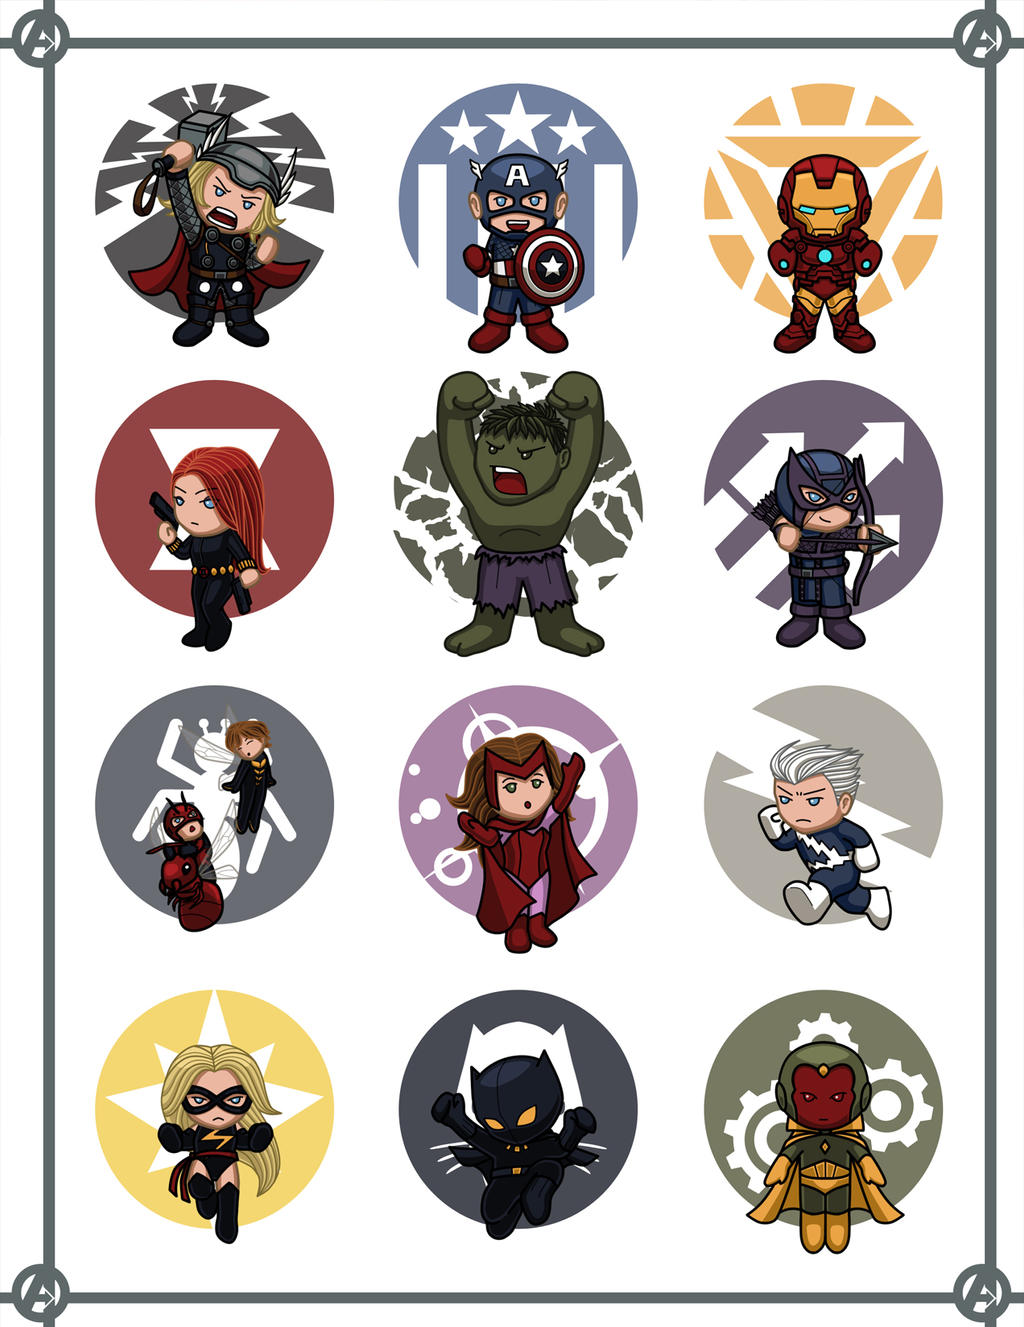 Cute Avengers Cartoon Wallpaper Godstyle Keywords And Pictures